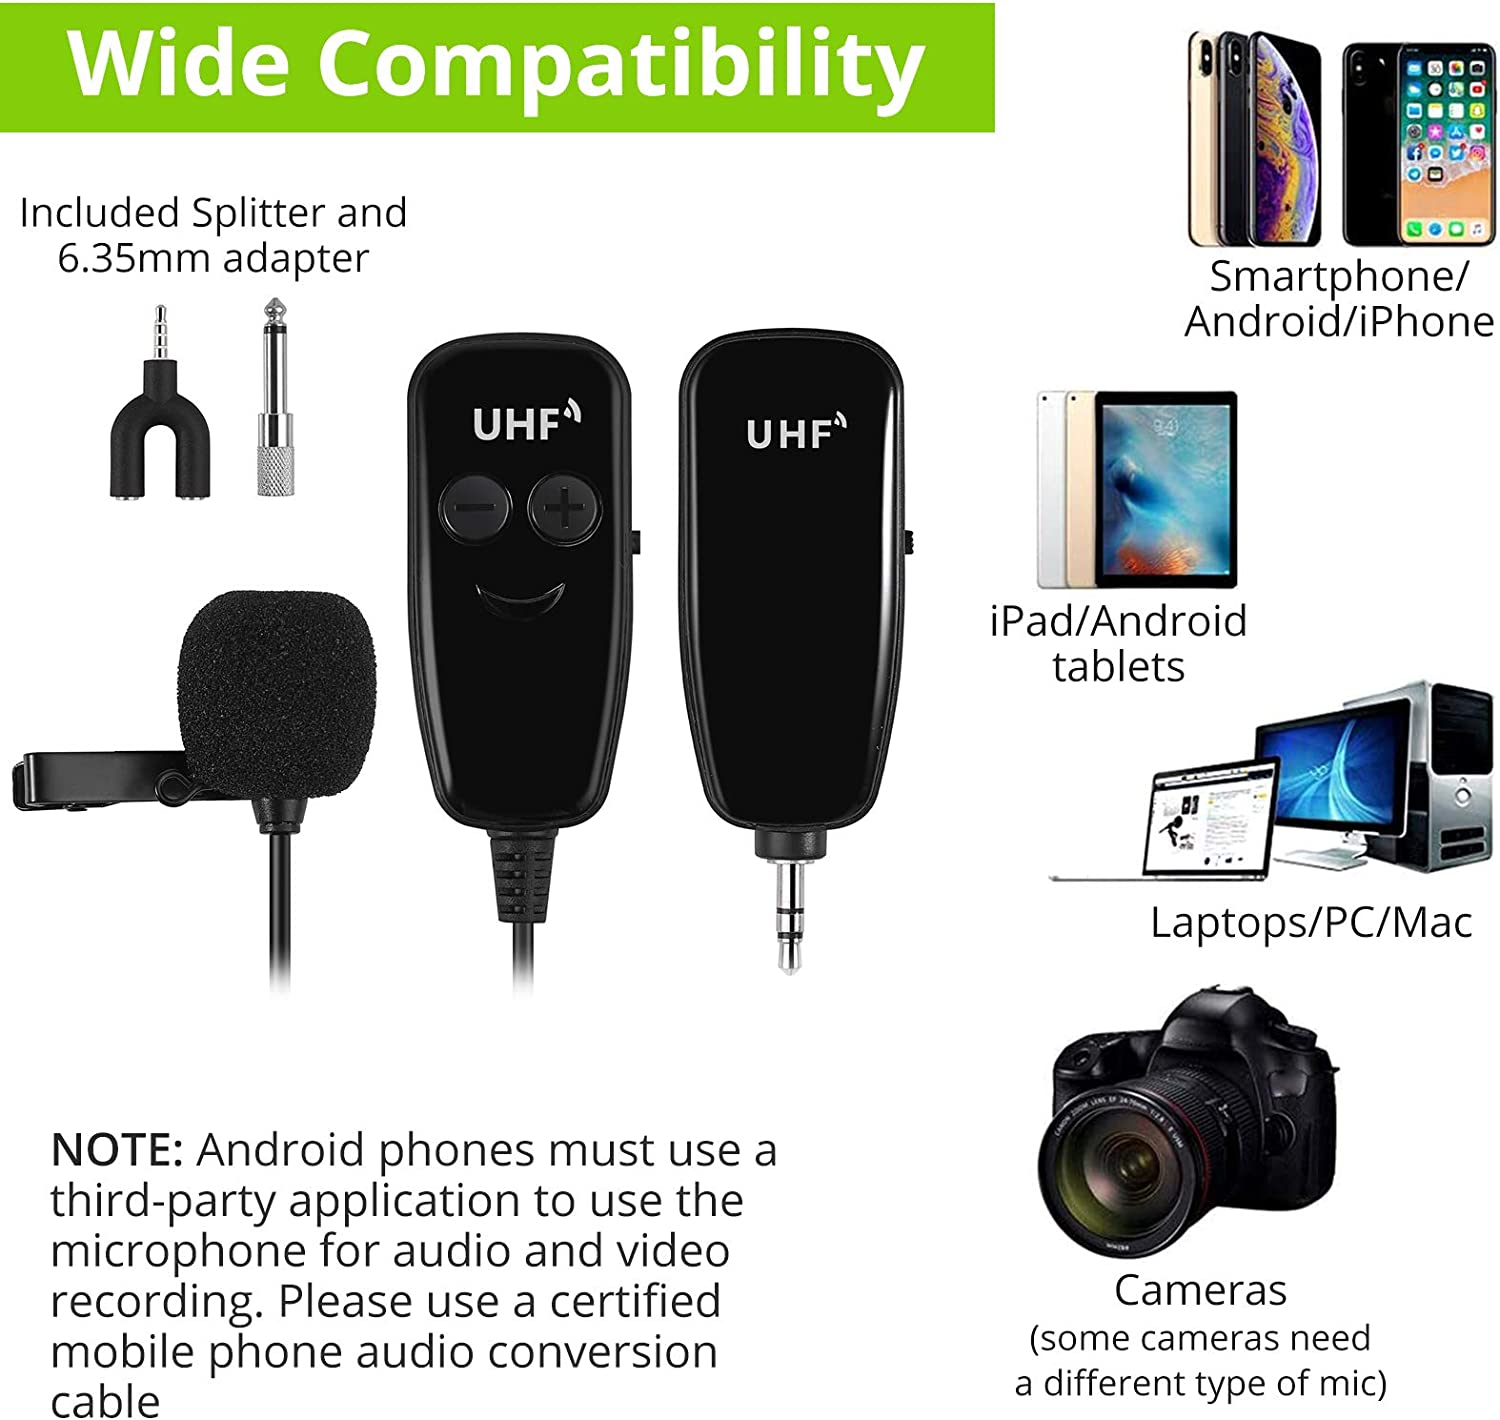 Ipad Samsung DSLR Camera LiNFOR Wireless Lavalier Lapel Microphone Portable Rechargeable UHF Wireless Lav Mic System,for Apple iPhone Android Phone Recording